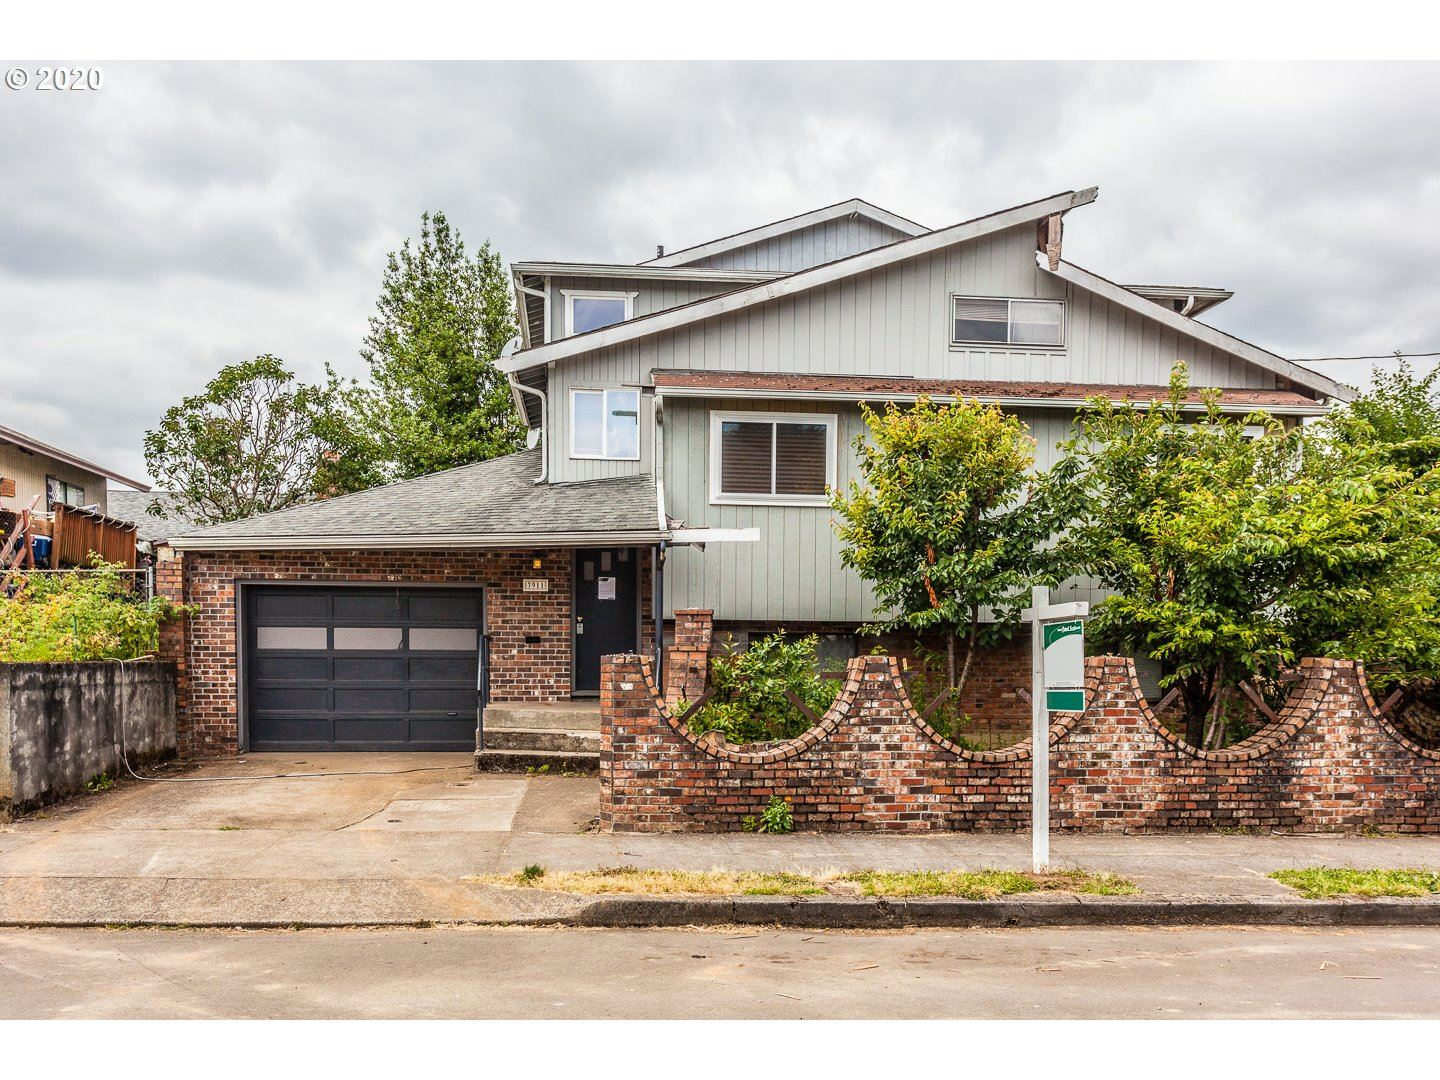 3911 SE 32ND AVE, Portland, OR 97202 - MLS#: 20452085